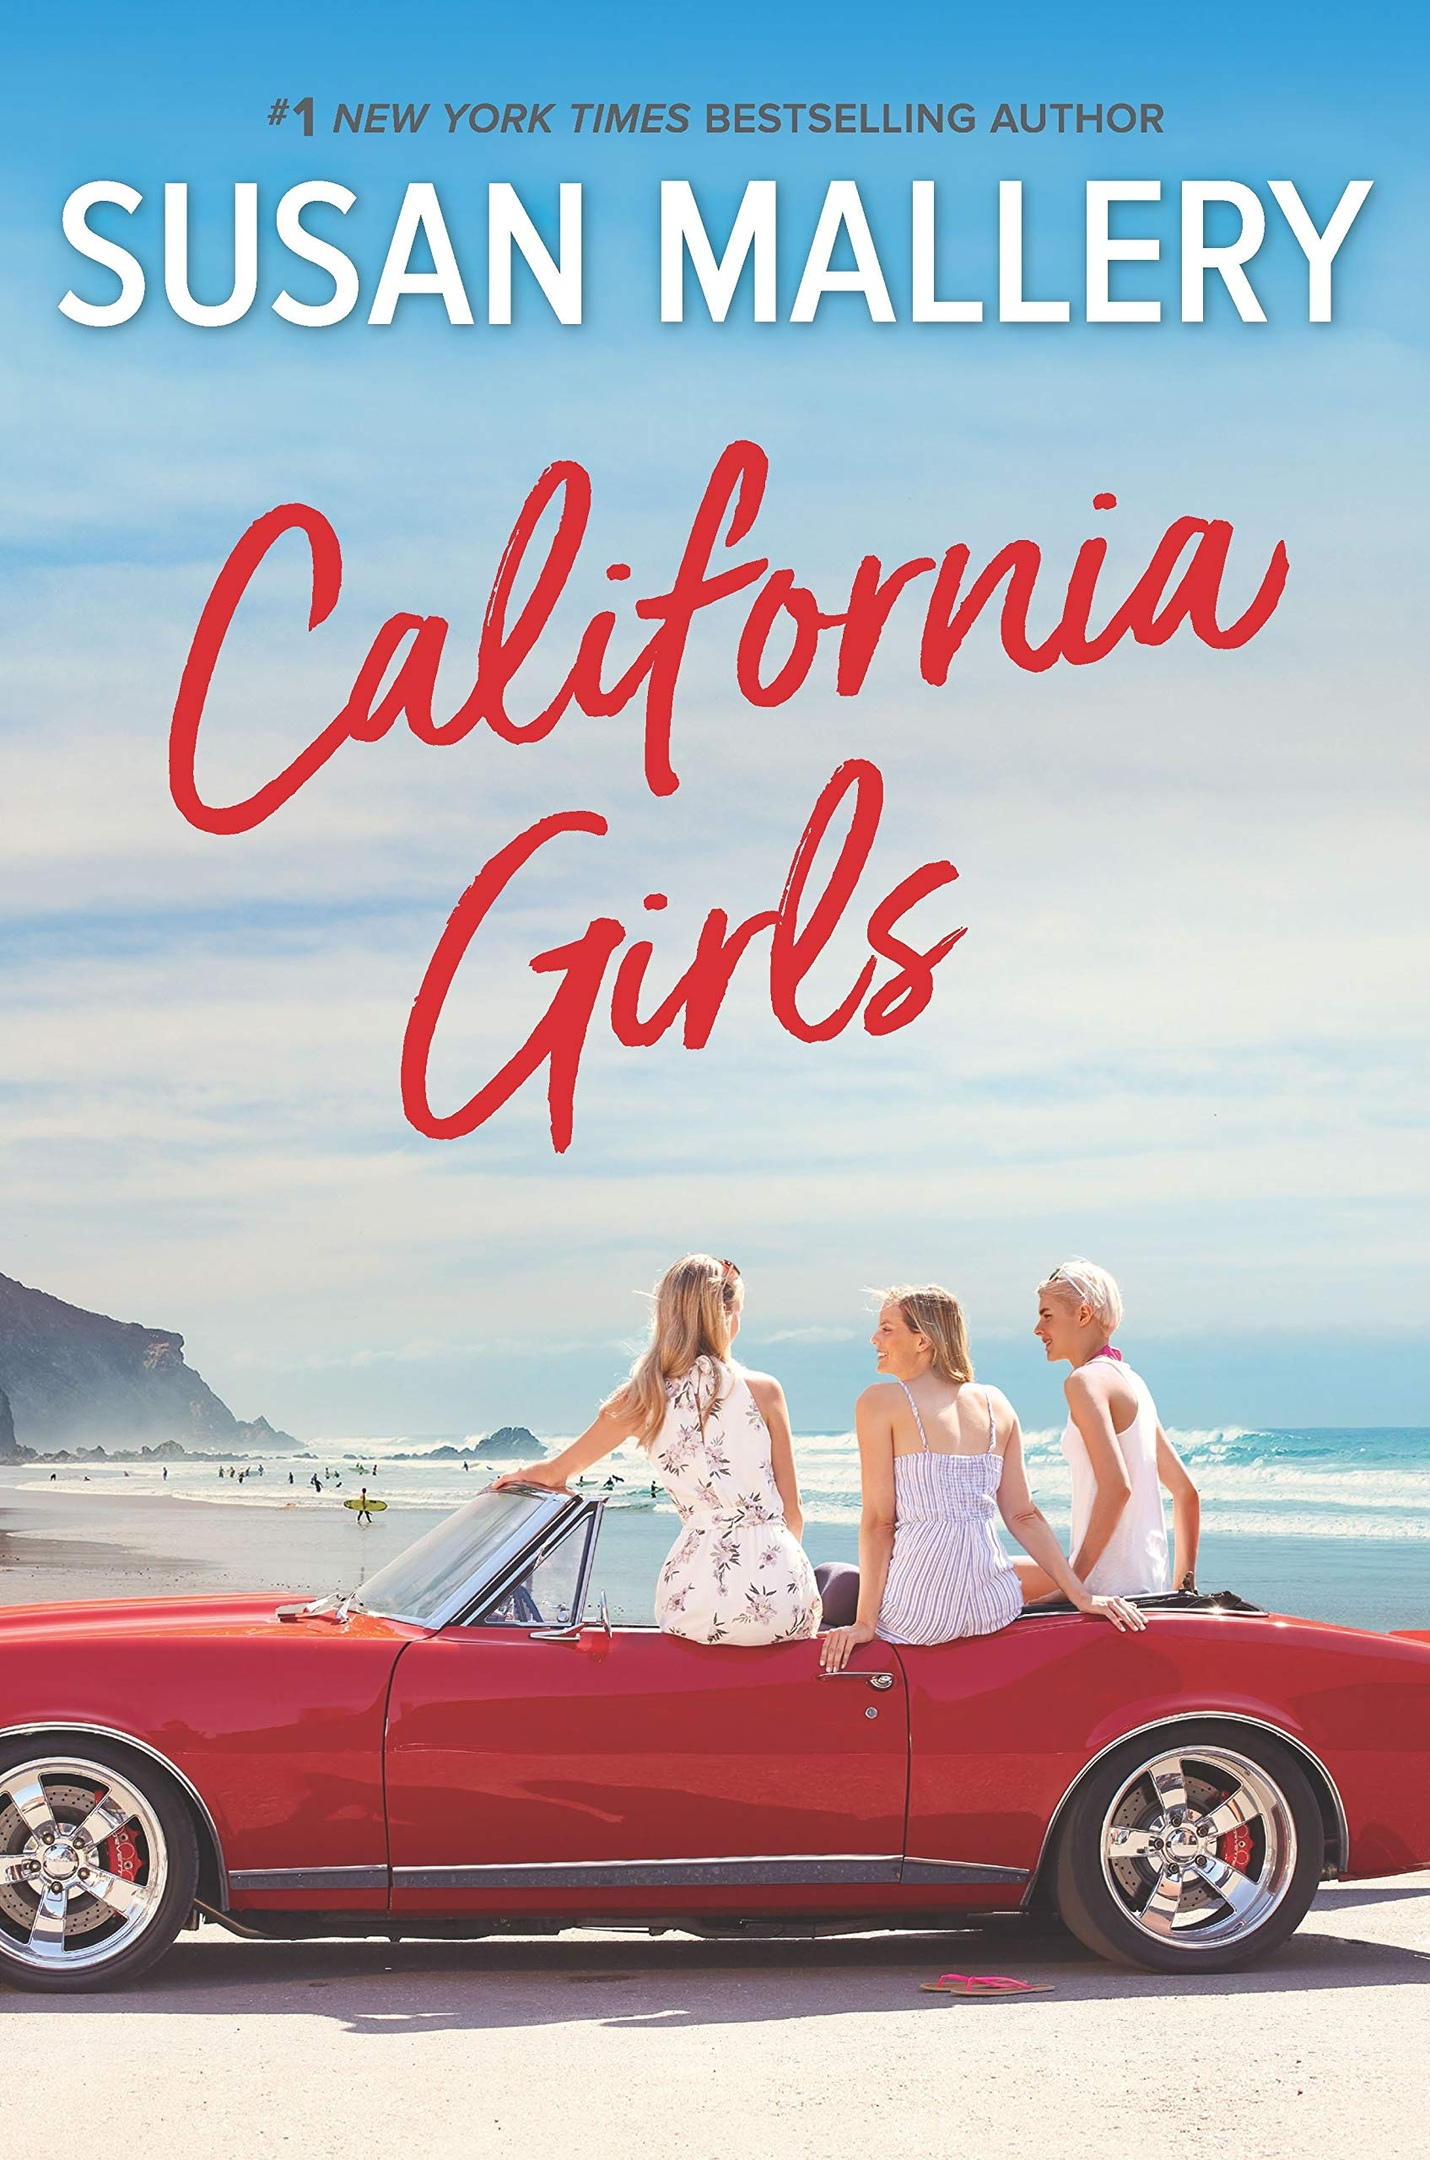 Susan Mallery – California Girls Genre: Author: